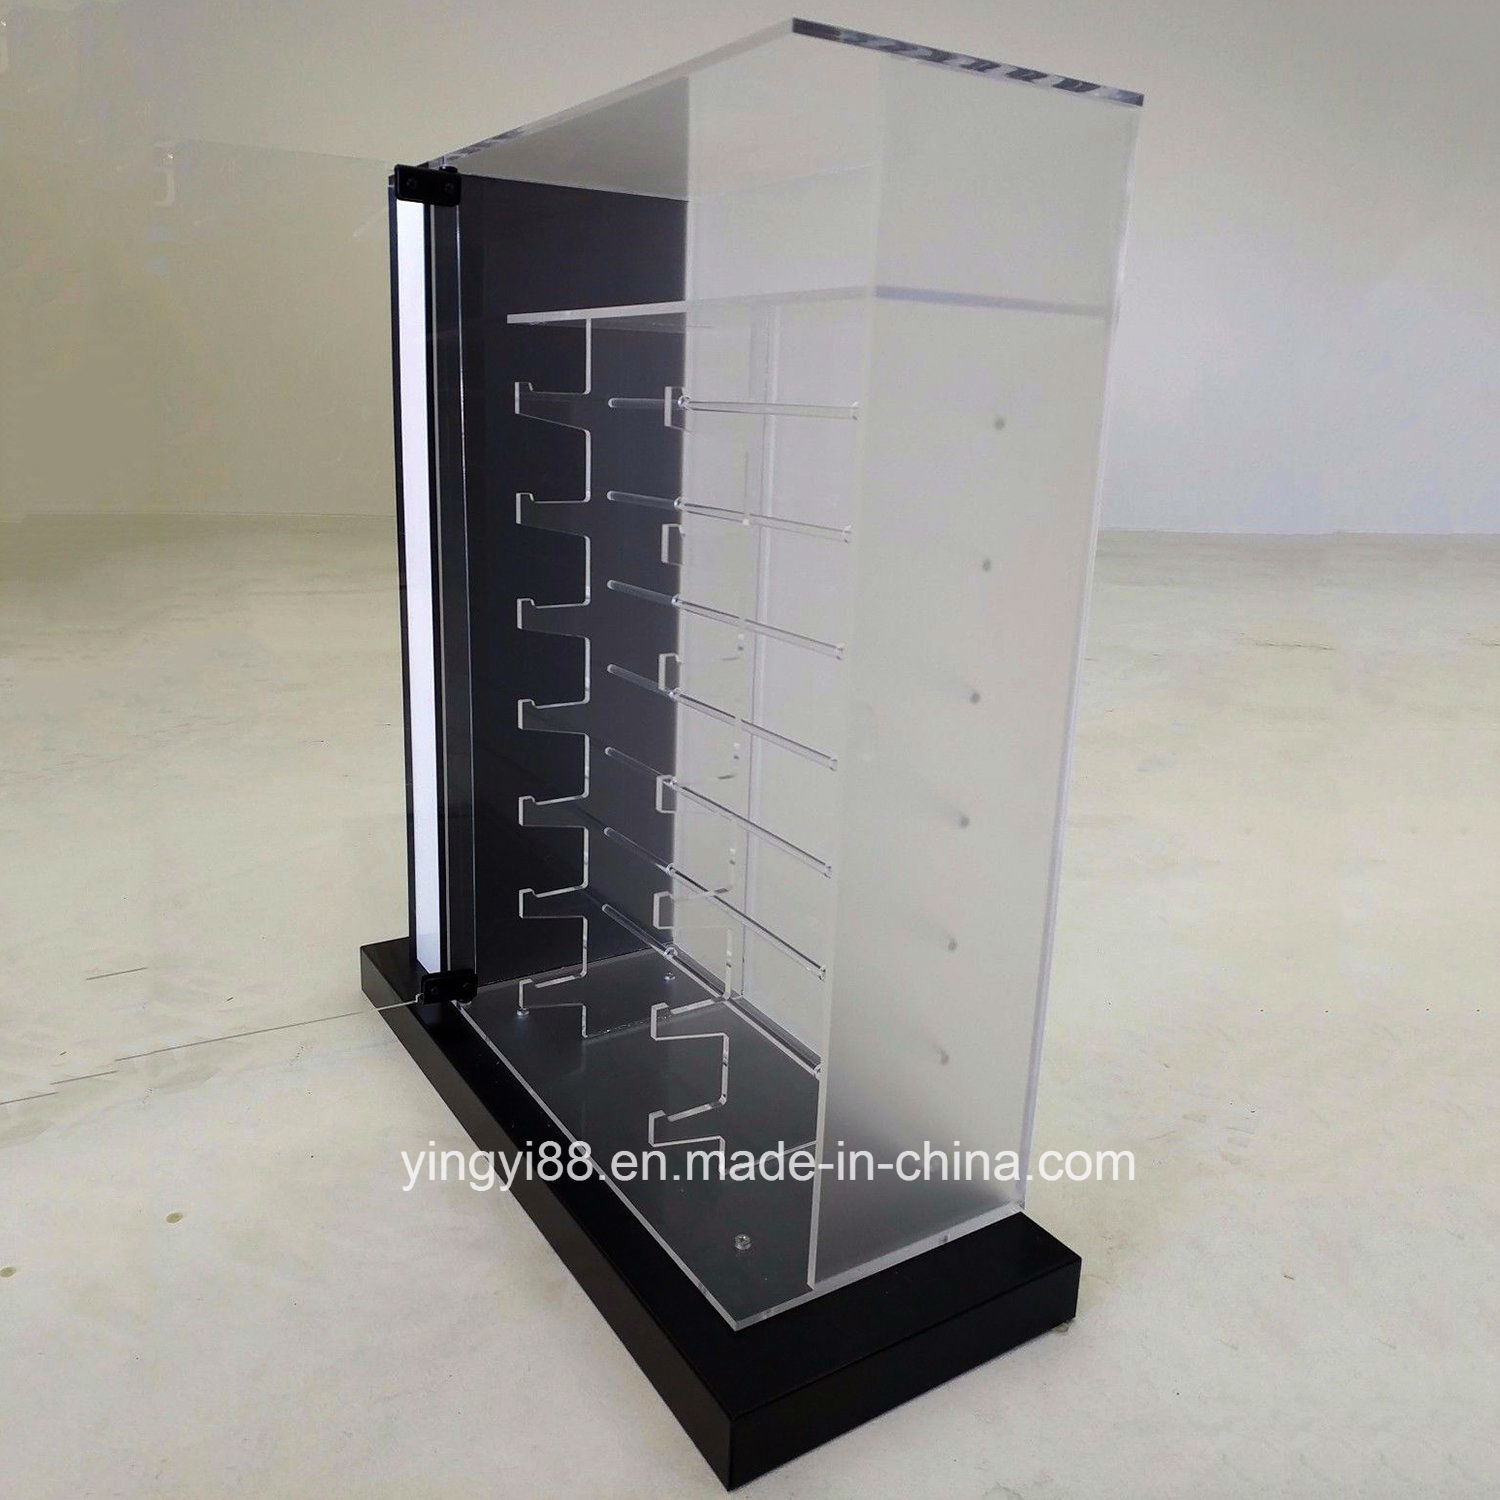 New Sunglasses Countertop Acrylic Display Case with Lock and Key